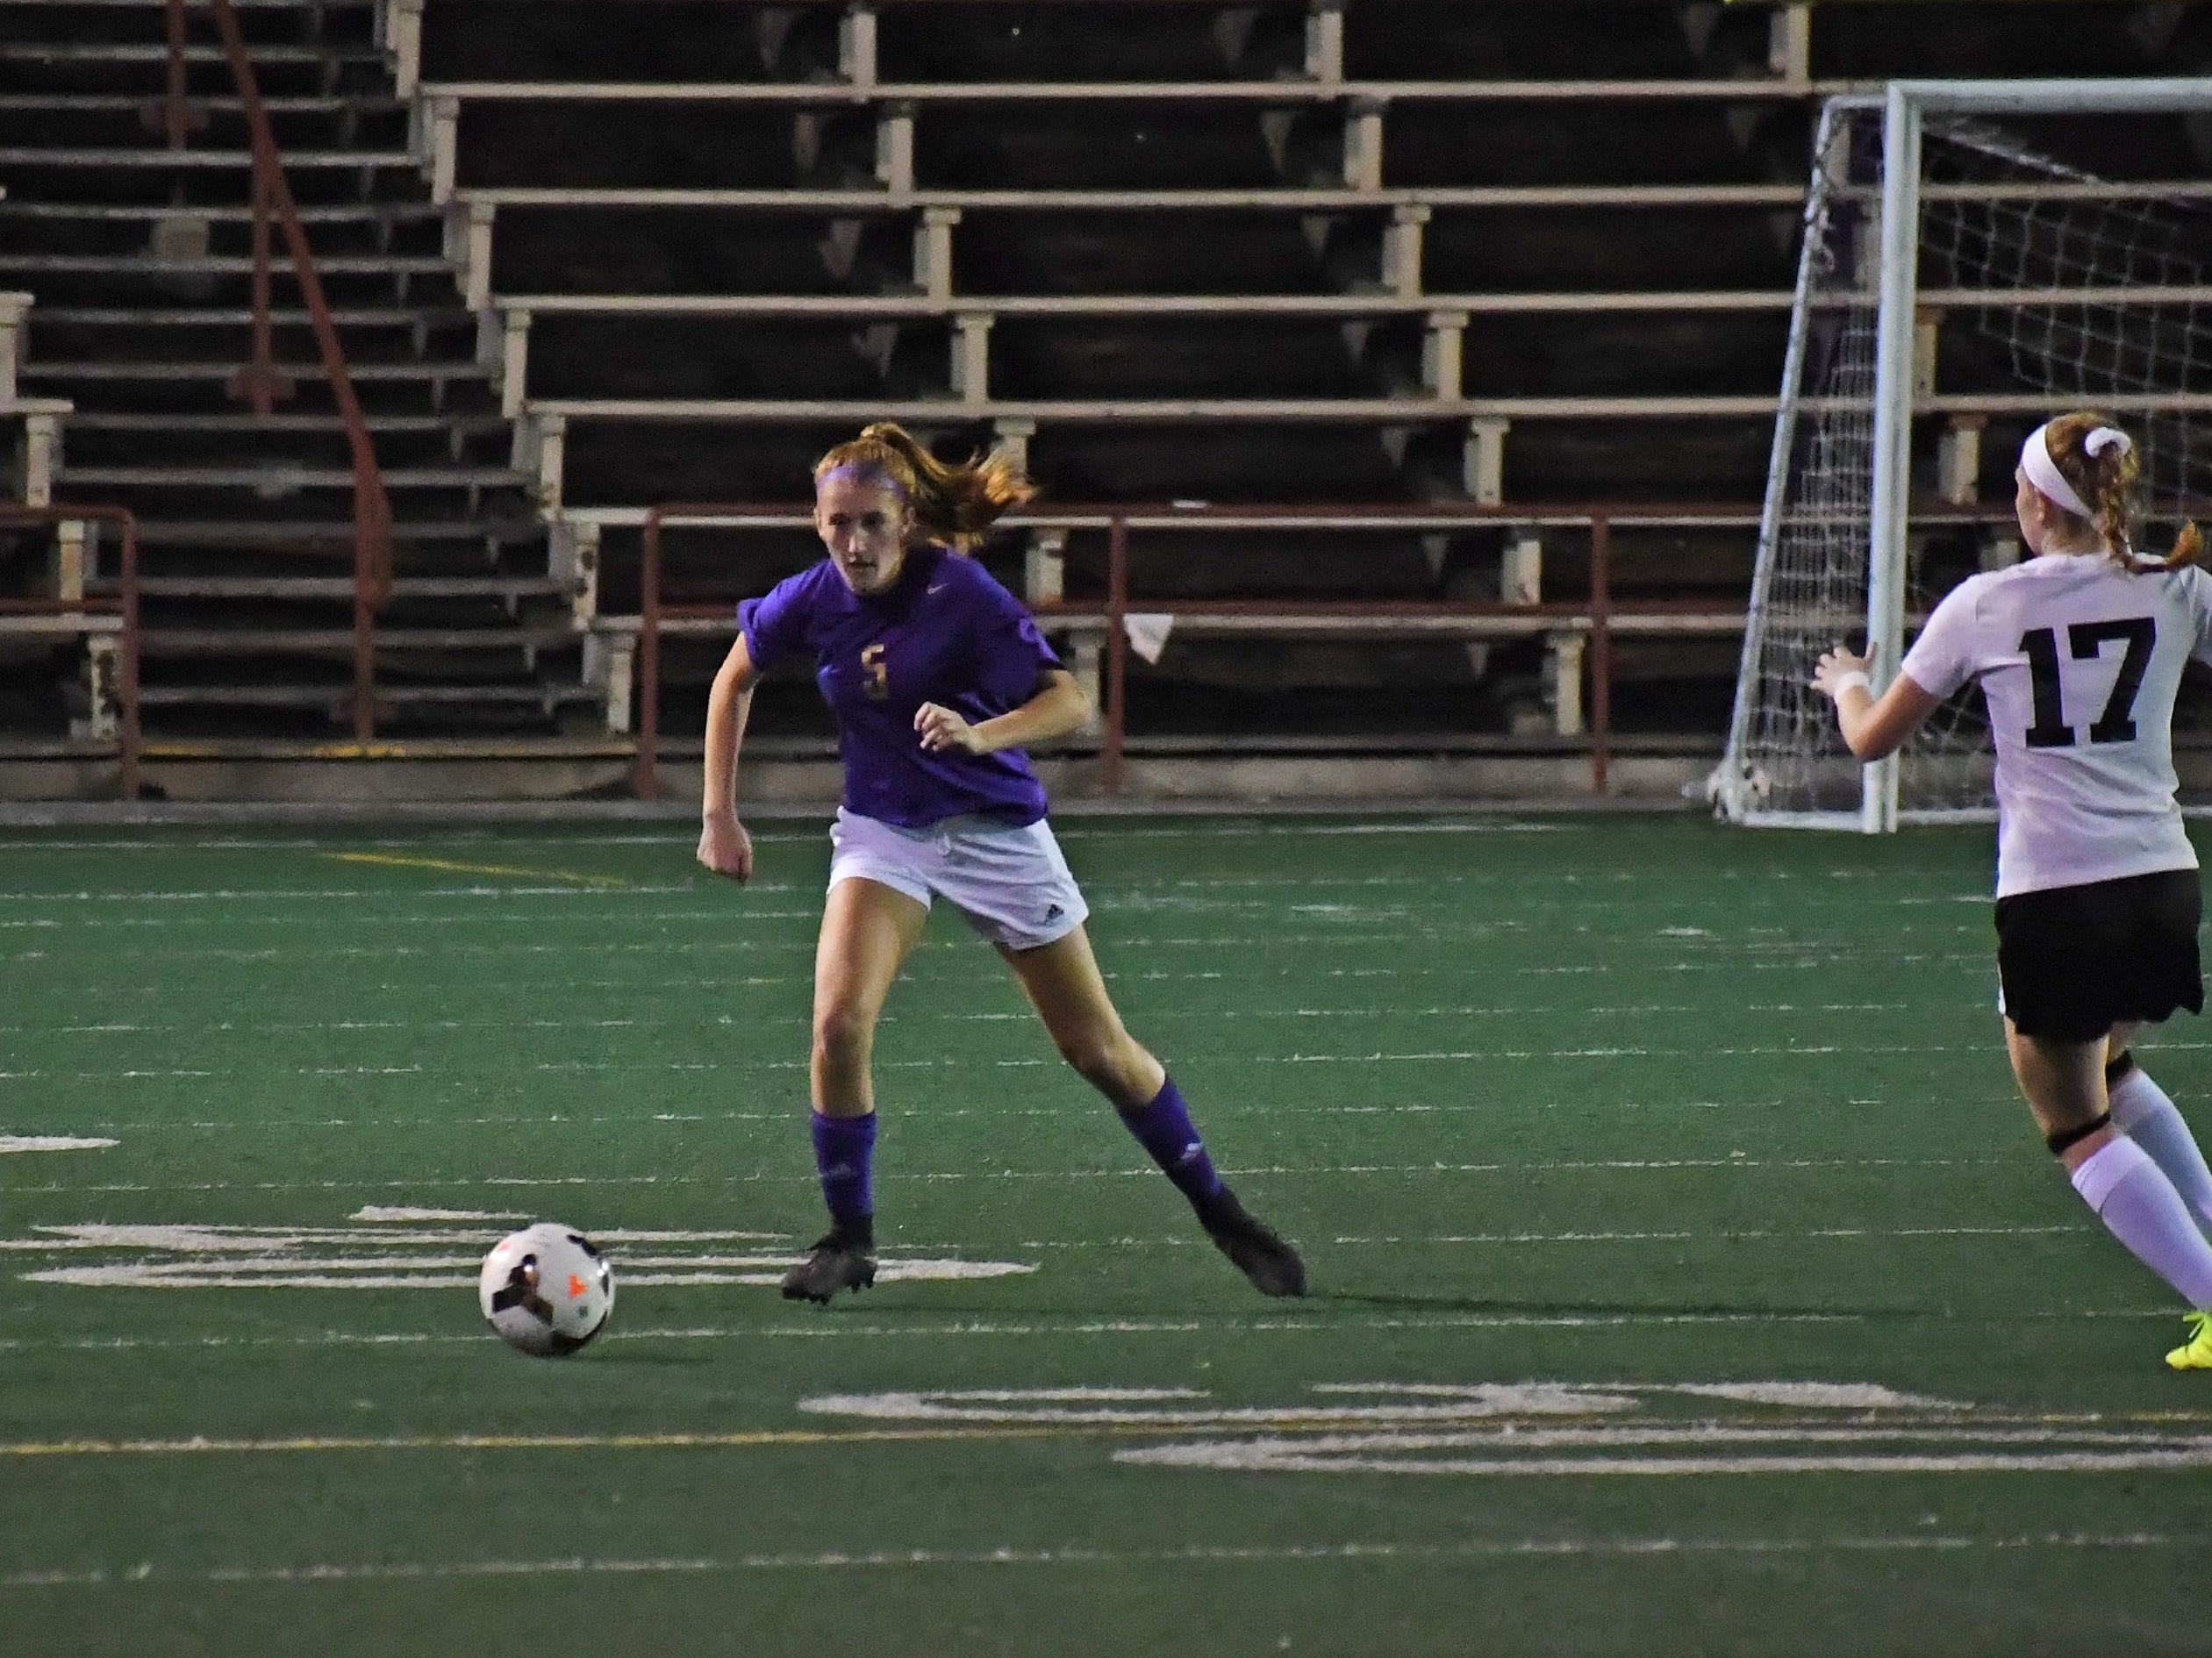 Sophomore Isabela Richert (5) notched an assist in Monday's win.